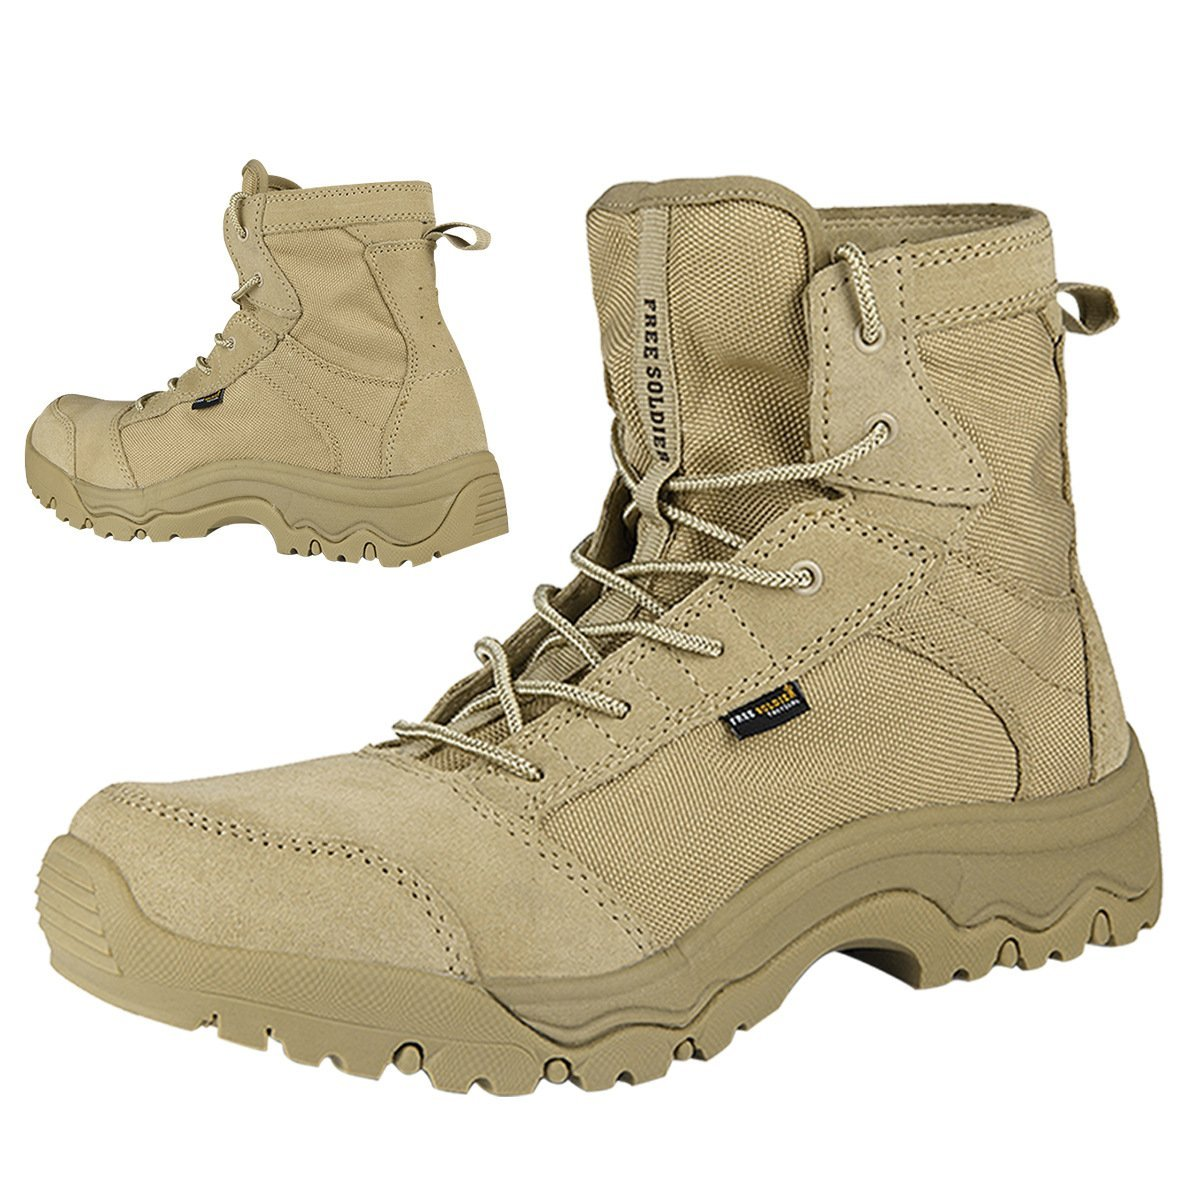 379c290e729 Cheap Boots Soldier, find Boots Soldier deals on line at Alibaba.com